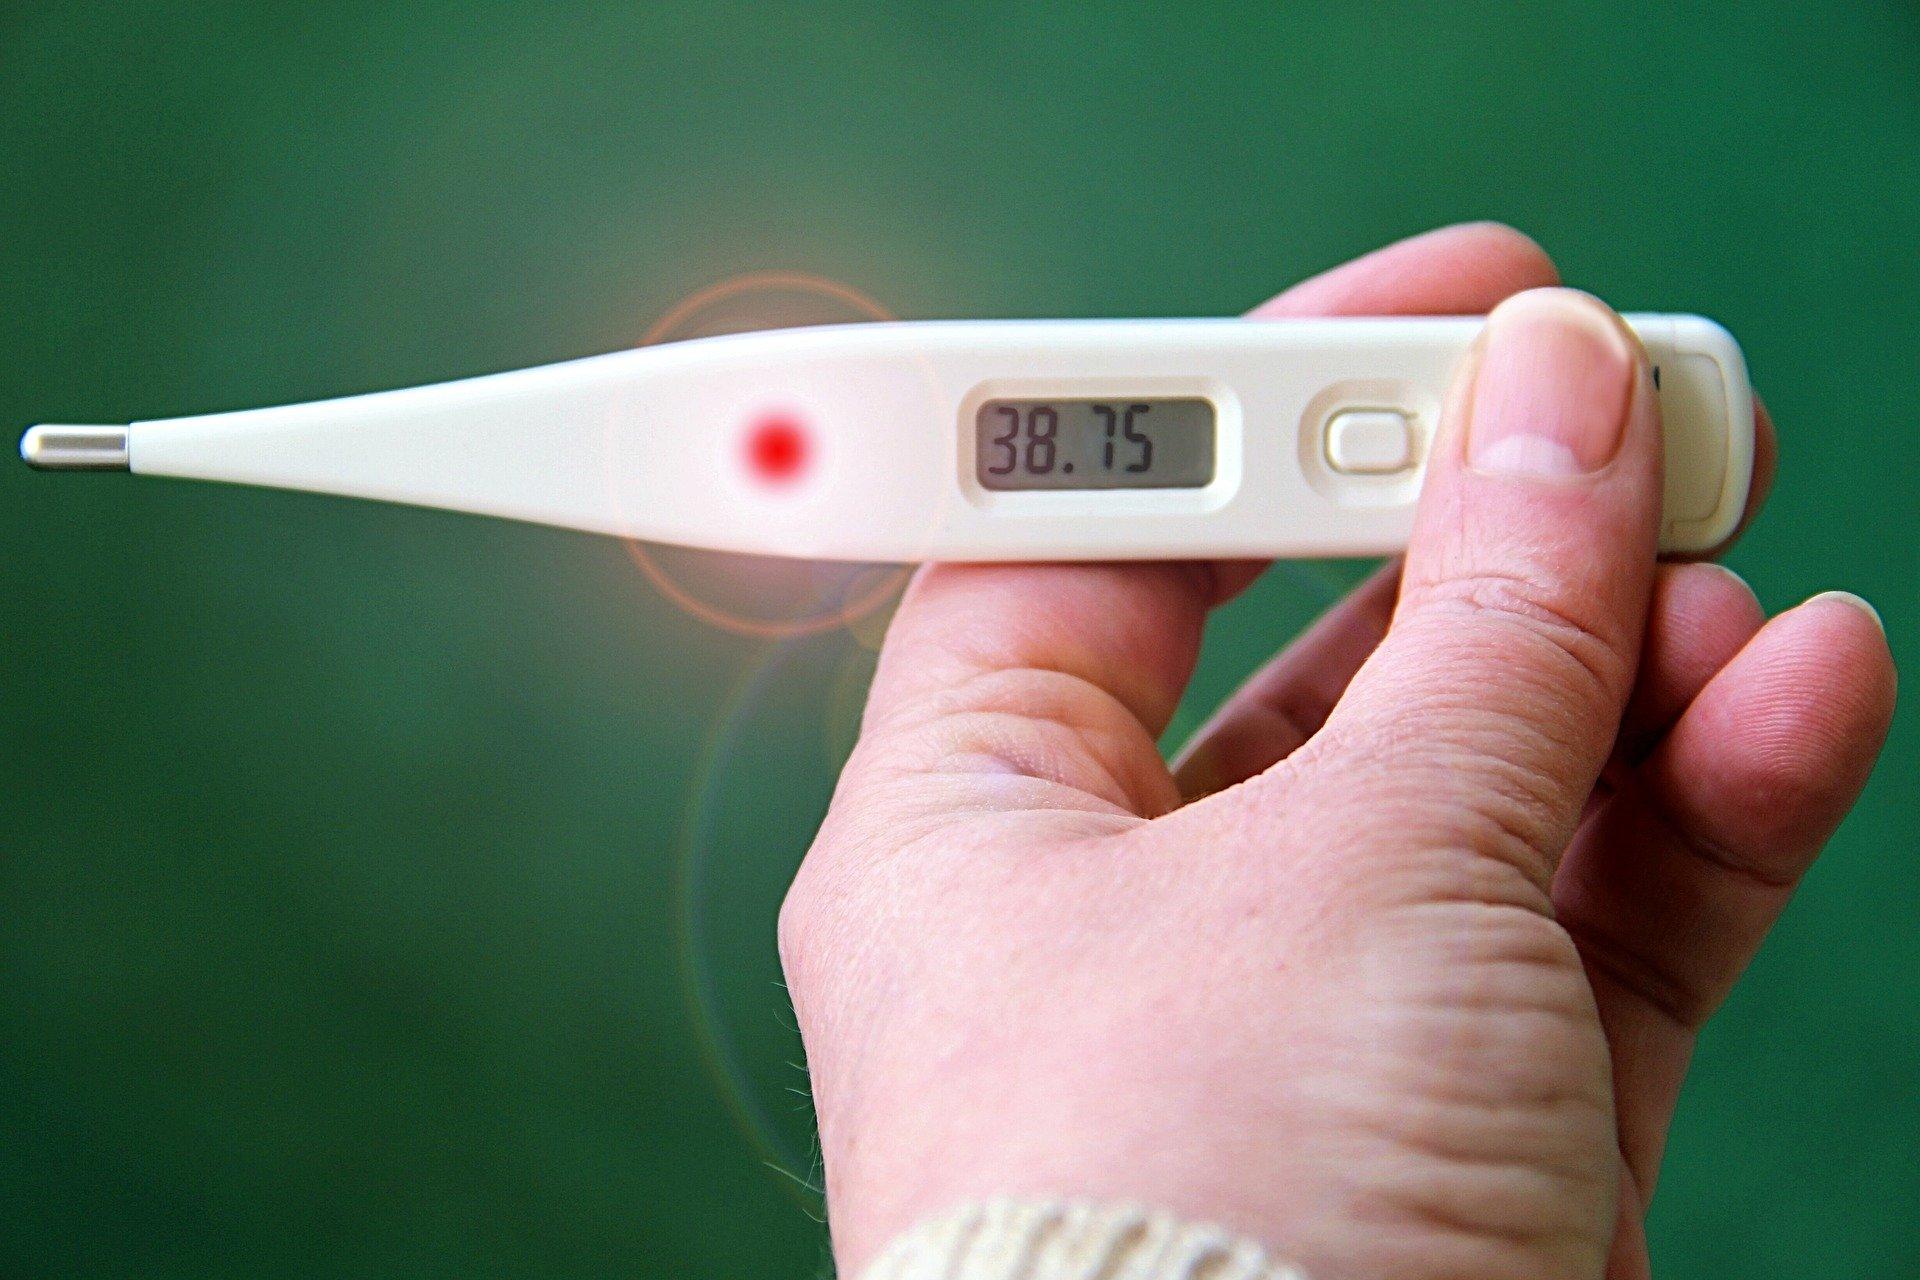 ASK THE LAWYER BY: DANIEL A. GWINN, ESQ. – WITHOUT PAY BECAUSE OF A FEVER?